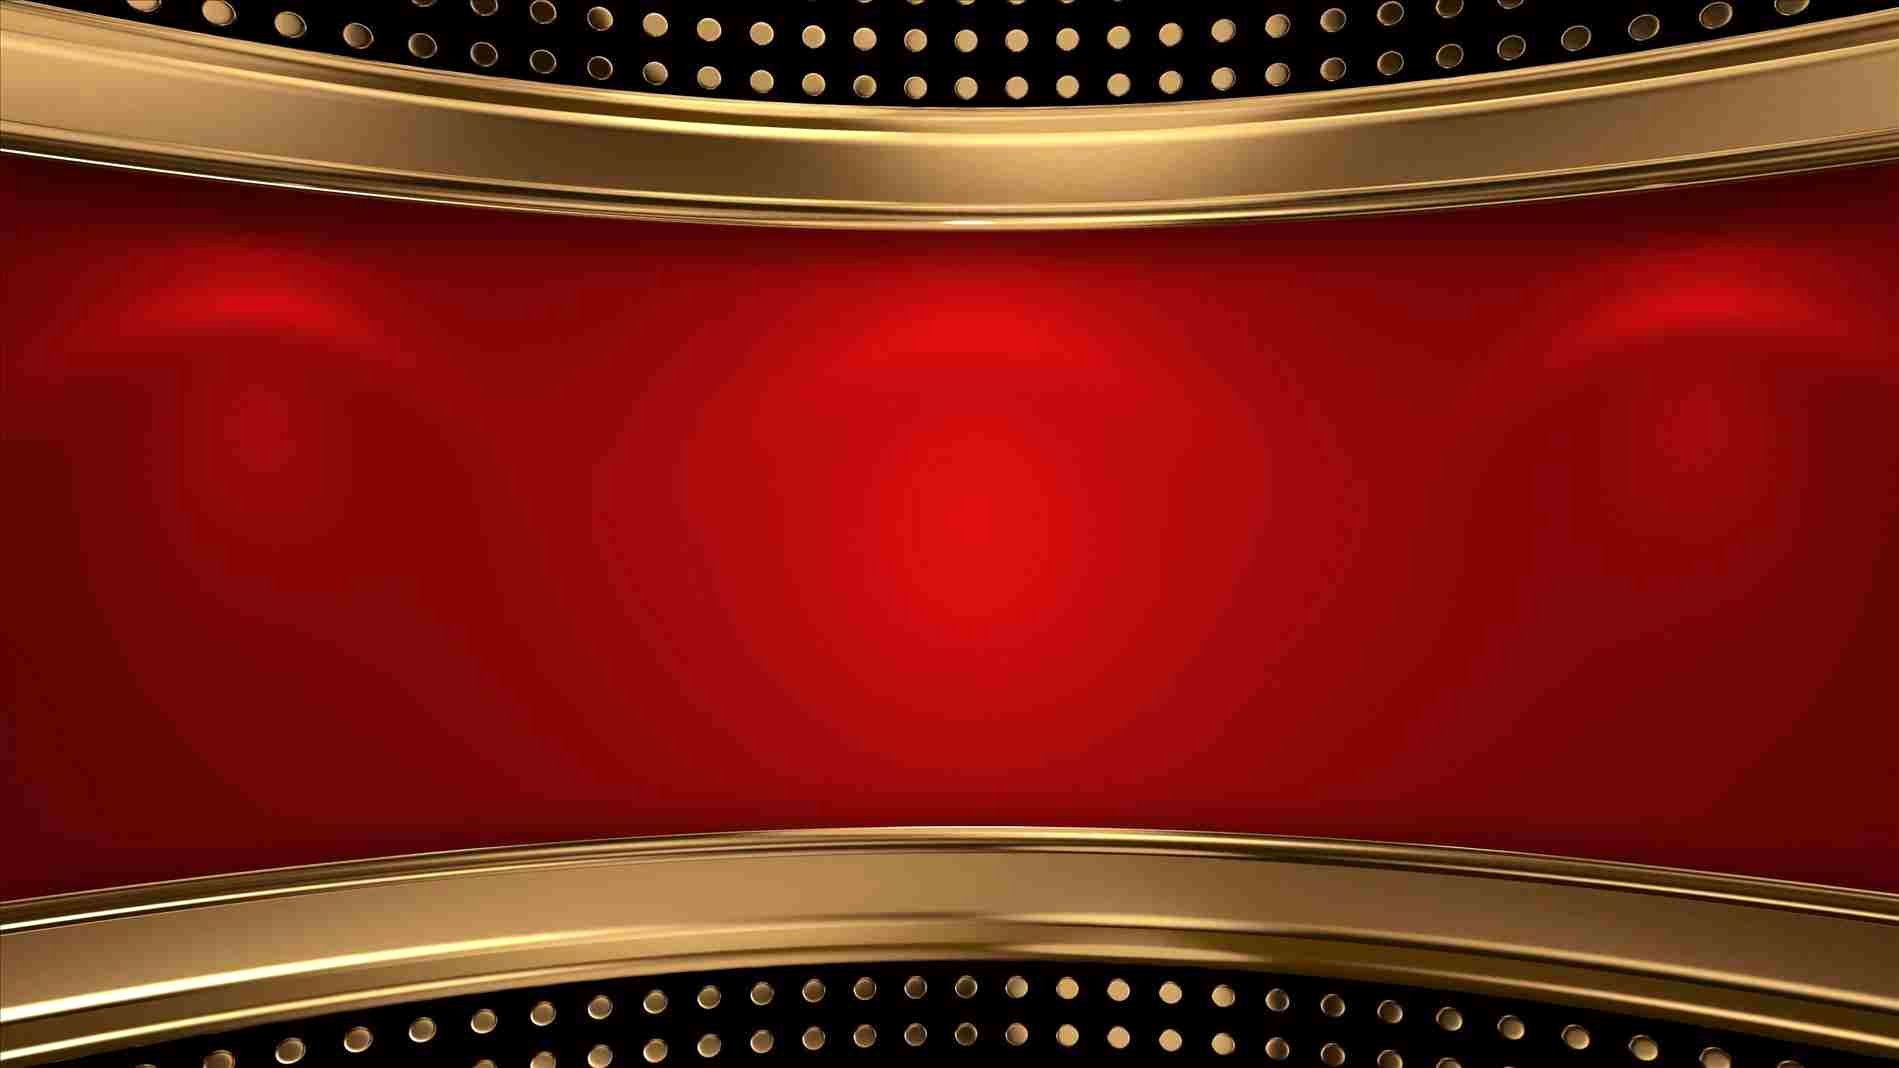 Red Carpet Backdrop Template Luxury Best Business Banner Red Carpet Backdrop Template Best